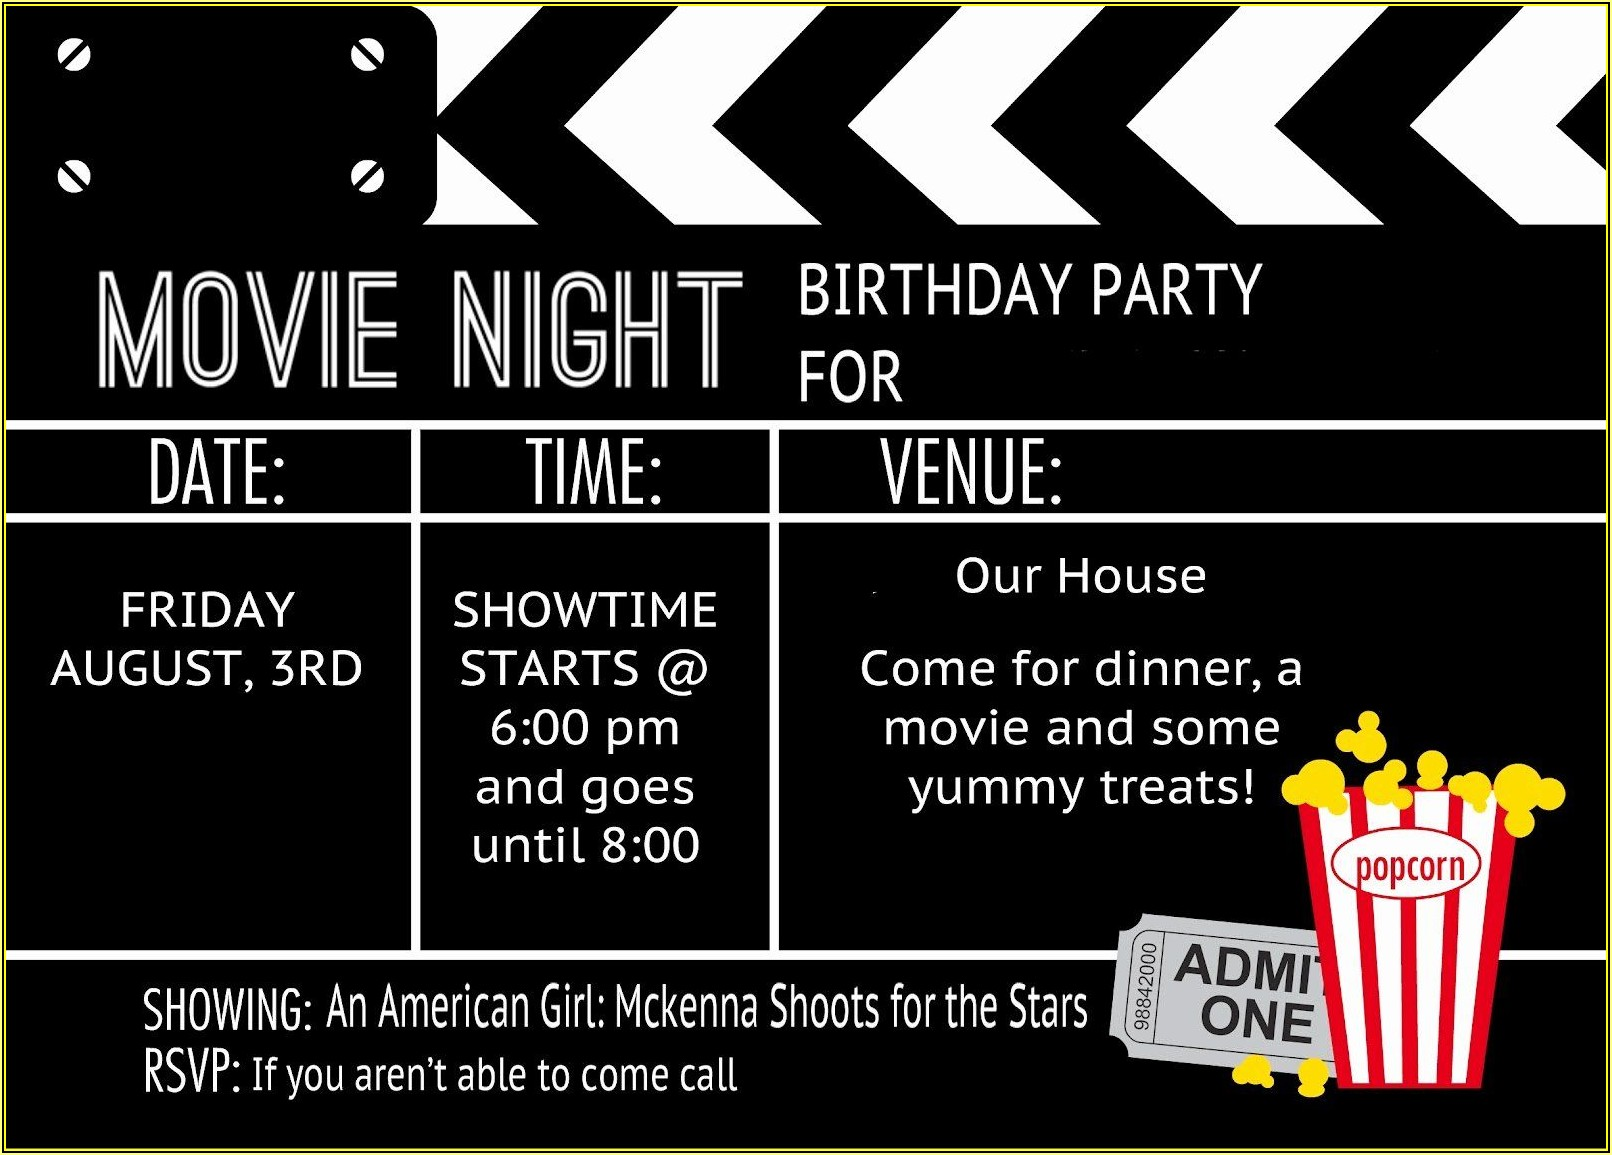 Movie Ticket Birthday Party Invitation Template Free